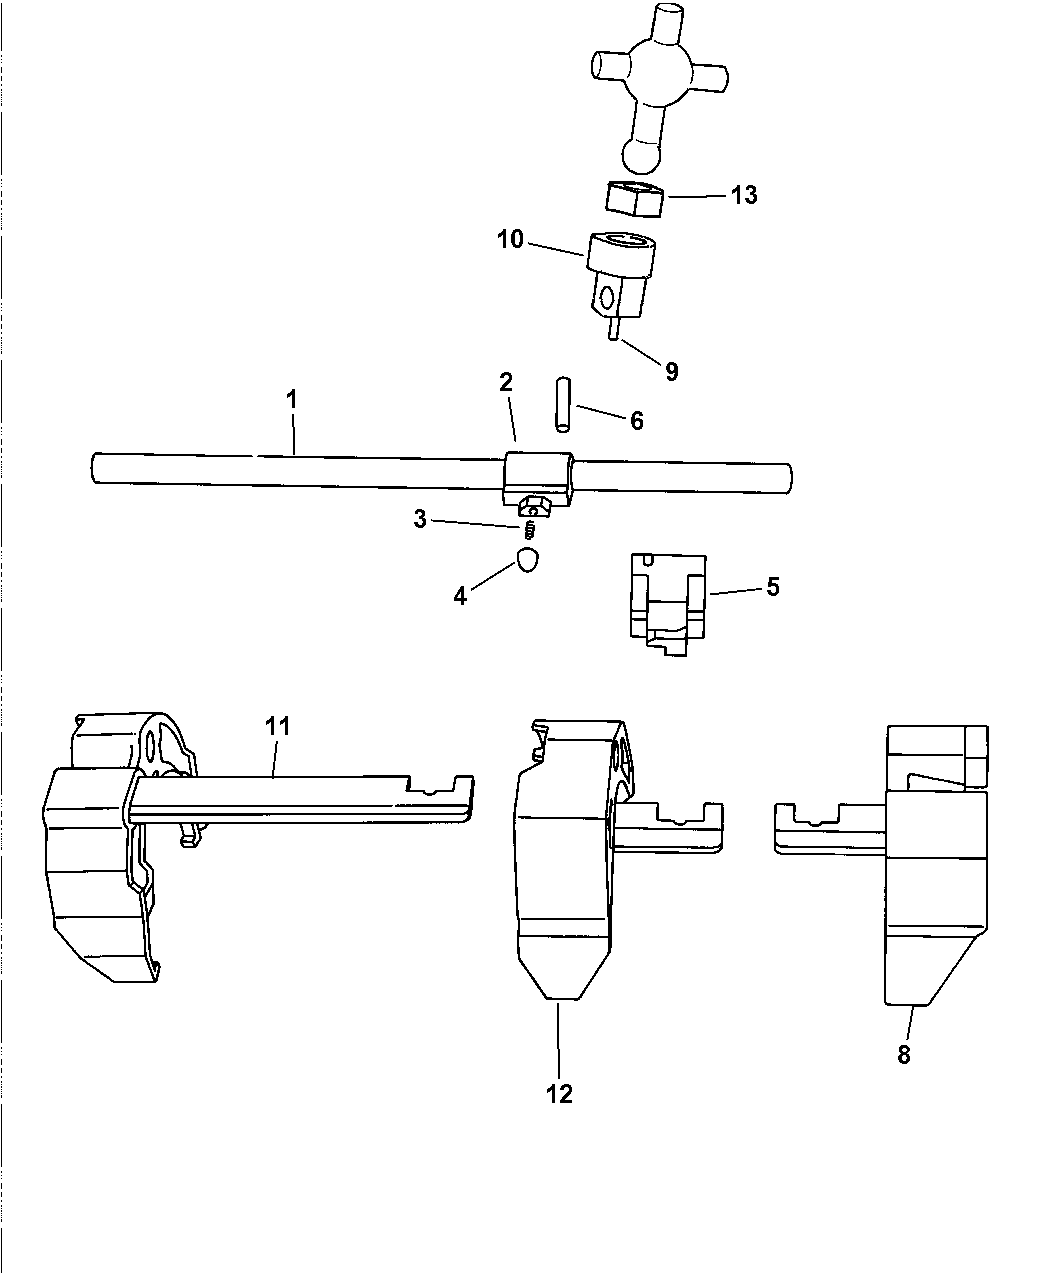 2001 dodge dakota transmission schematic